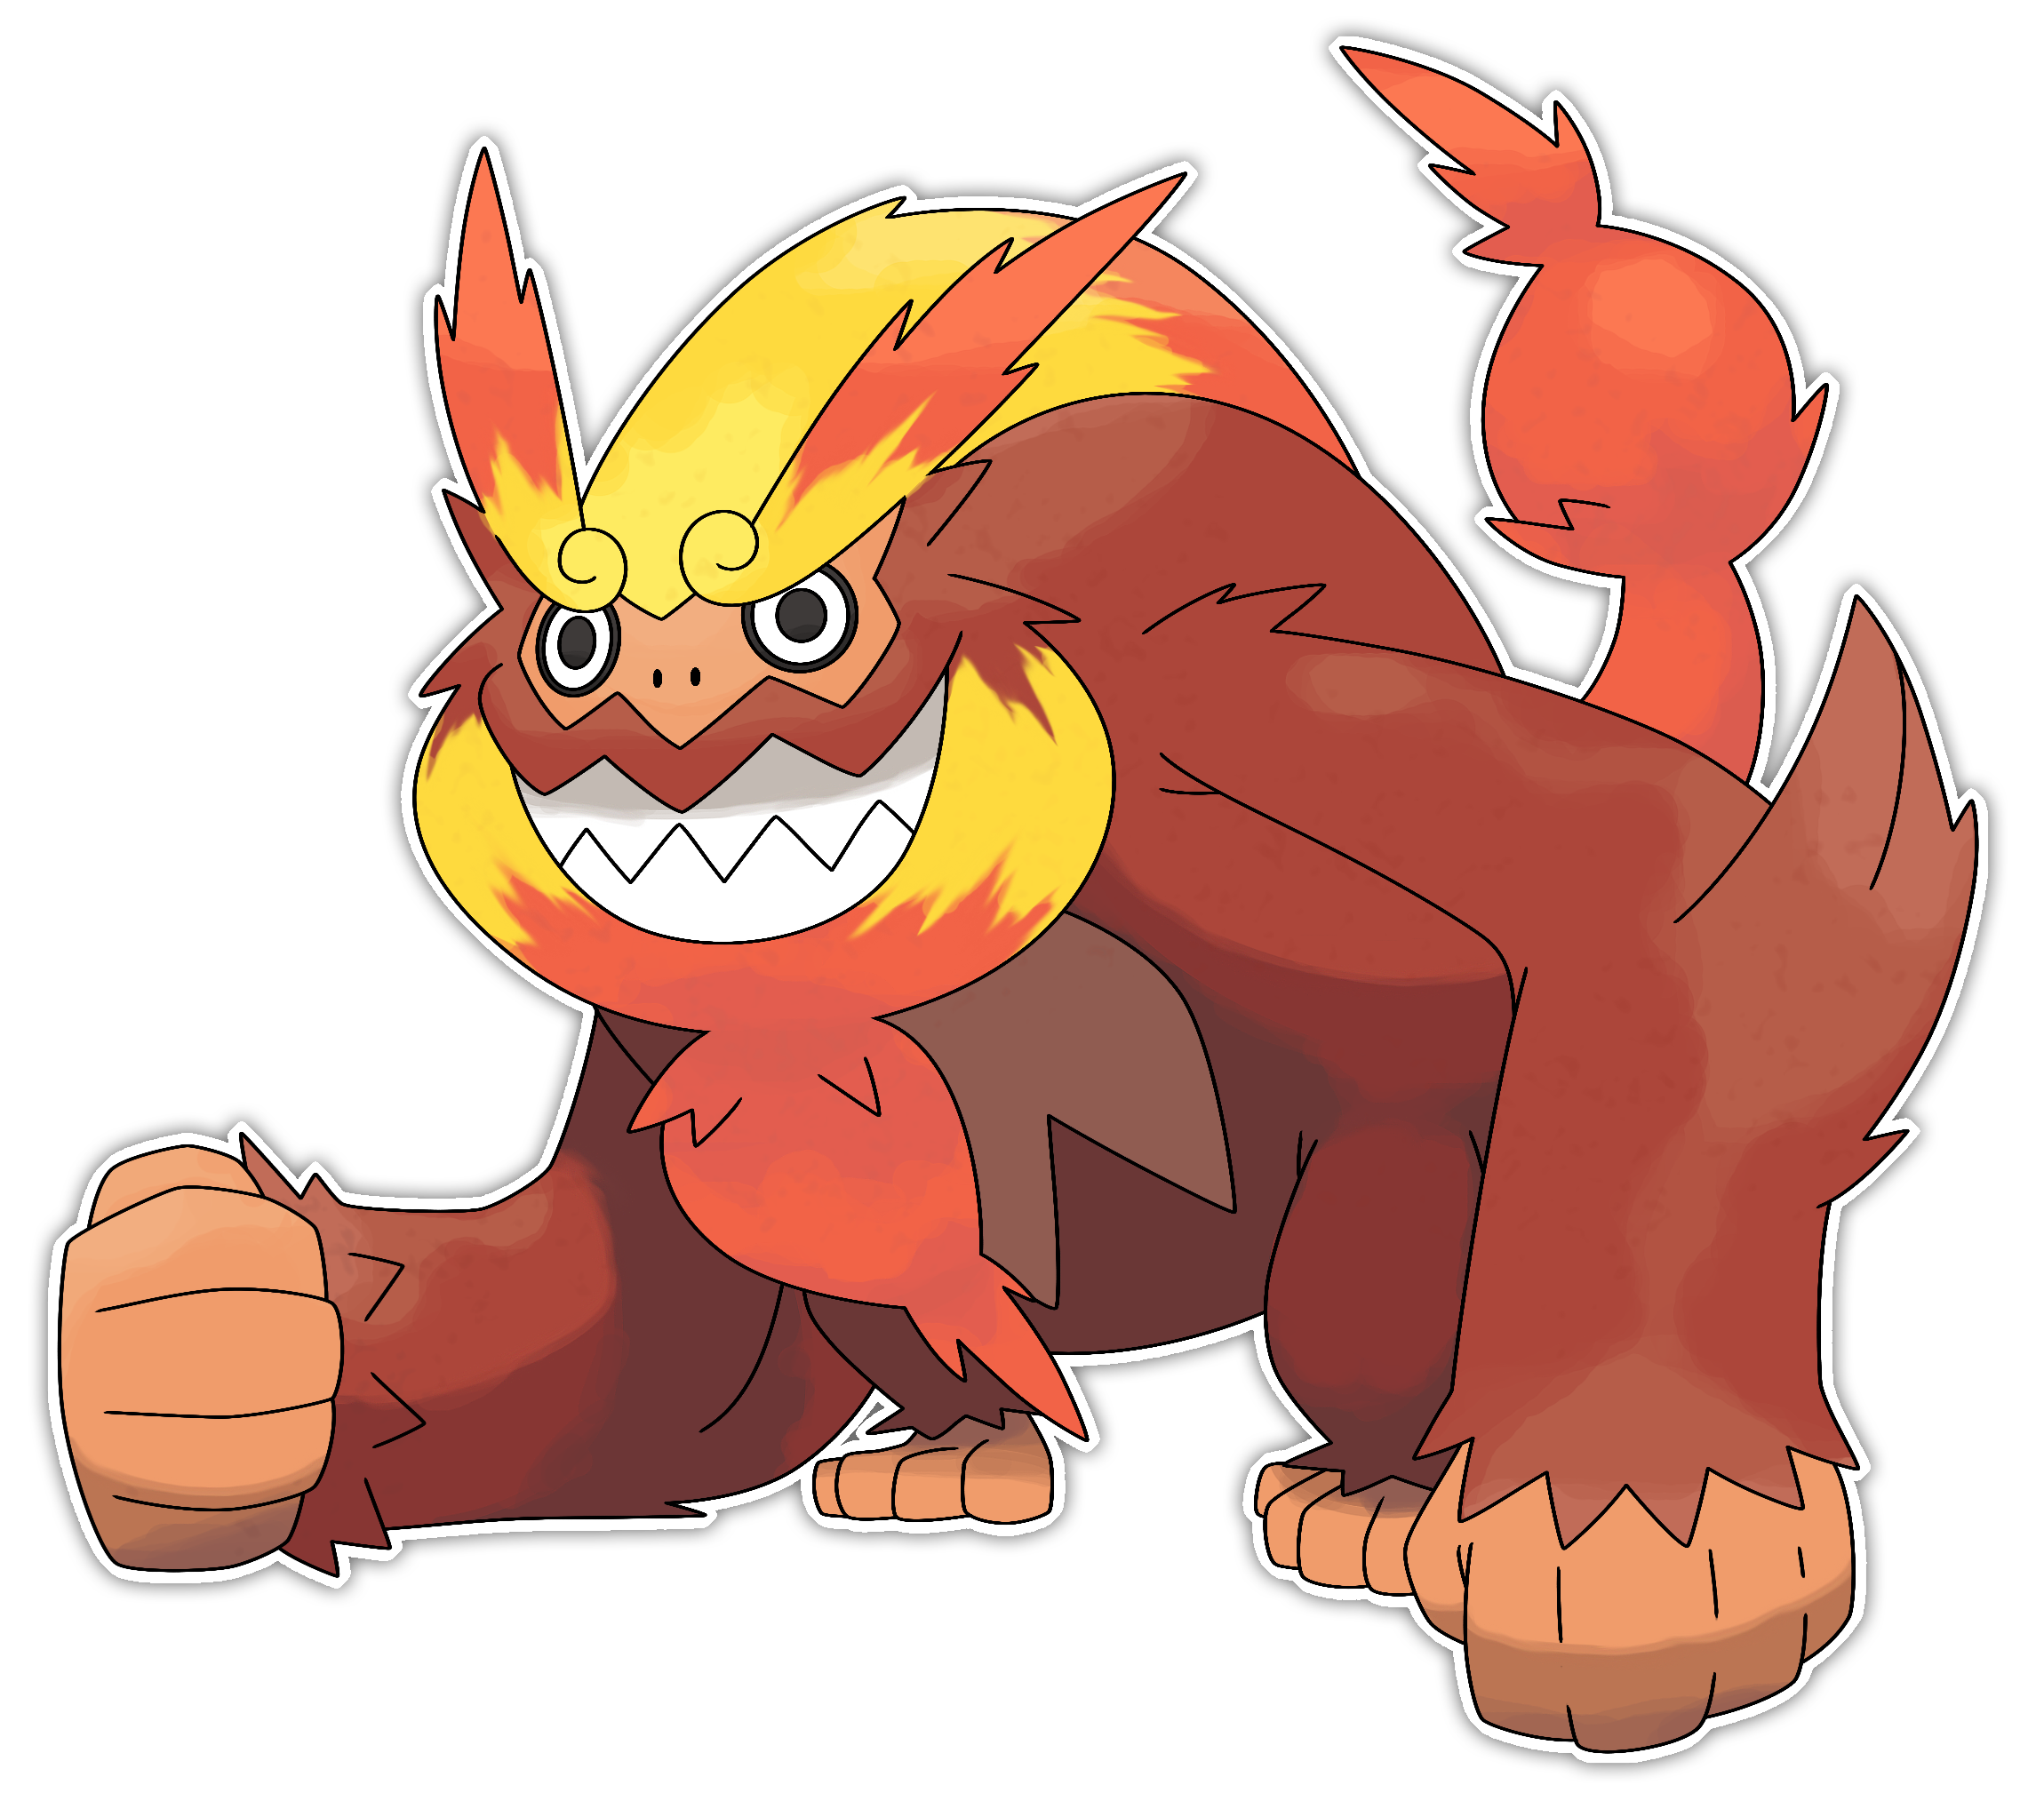 Mega Darmanitan by Smiley.